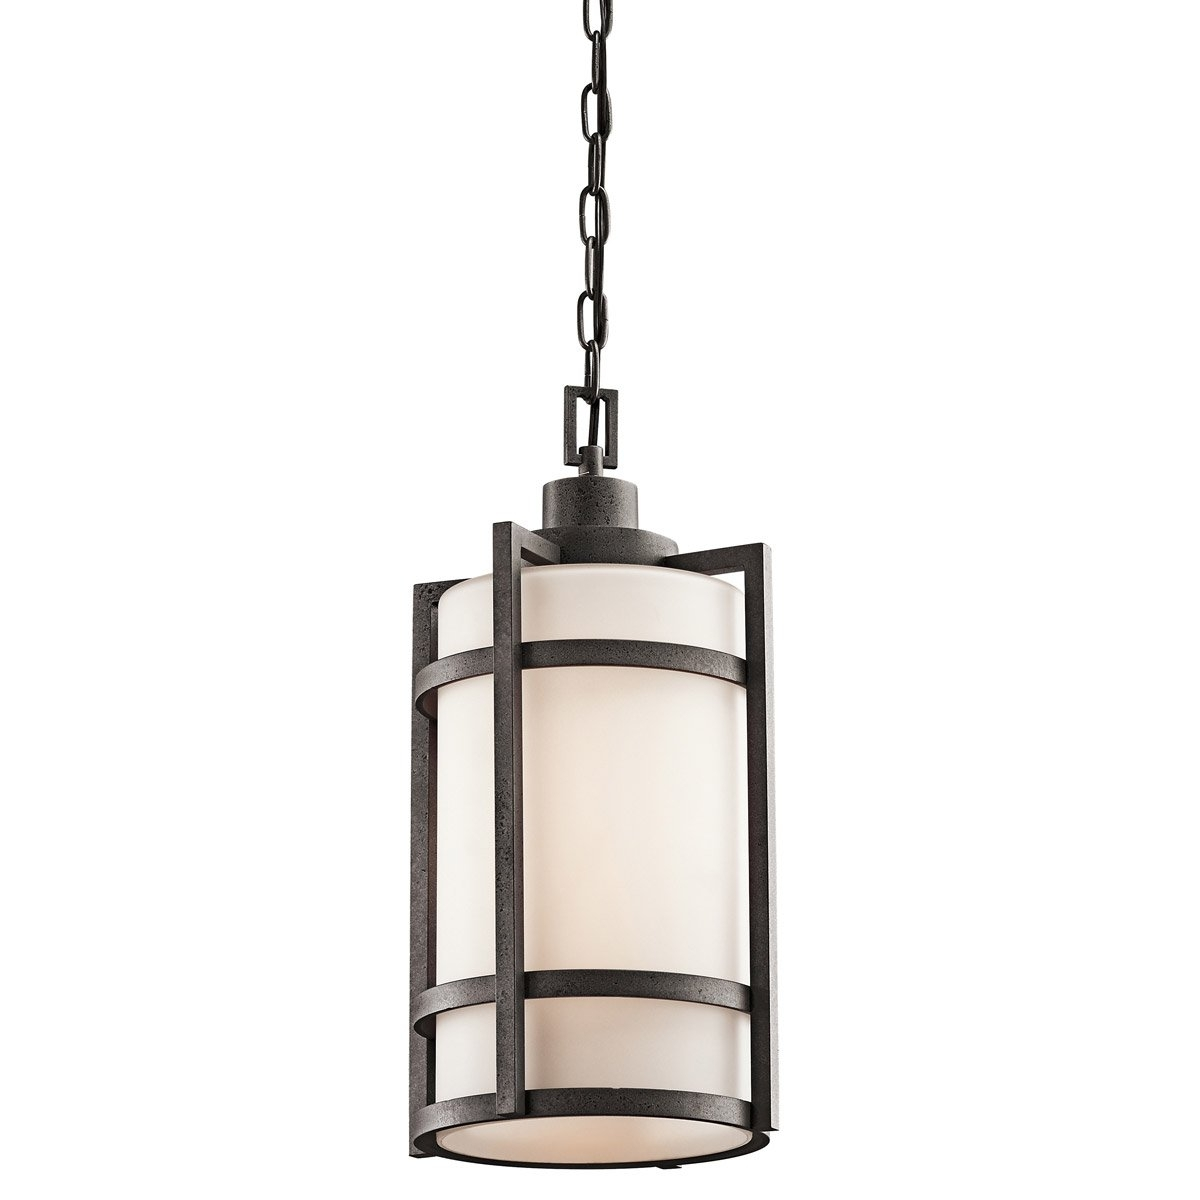 Kichler Lighting 49124Avi Camden 1 Light 10 Inch Anvil Iron Outdoor Within Outdoor Pendant Kichler Lighting (View 13 of 15)